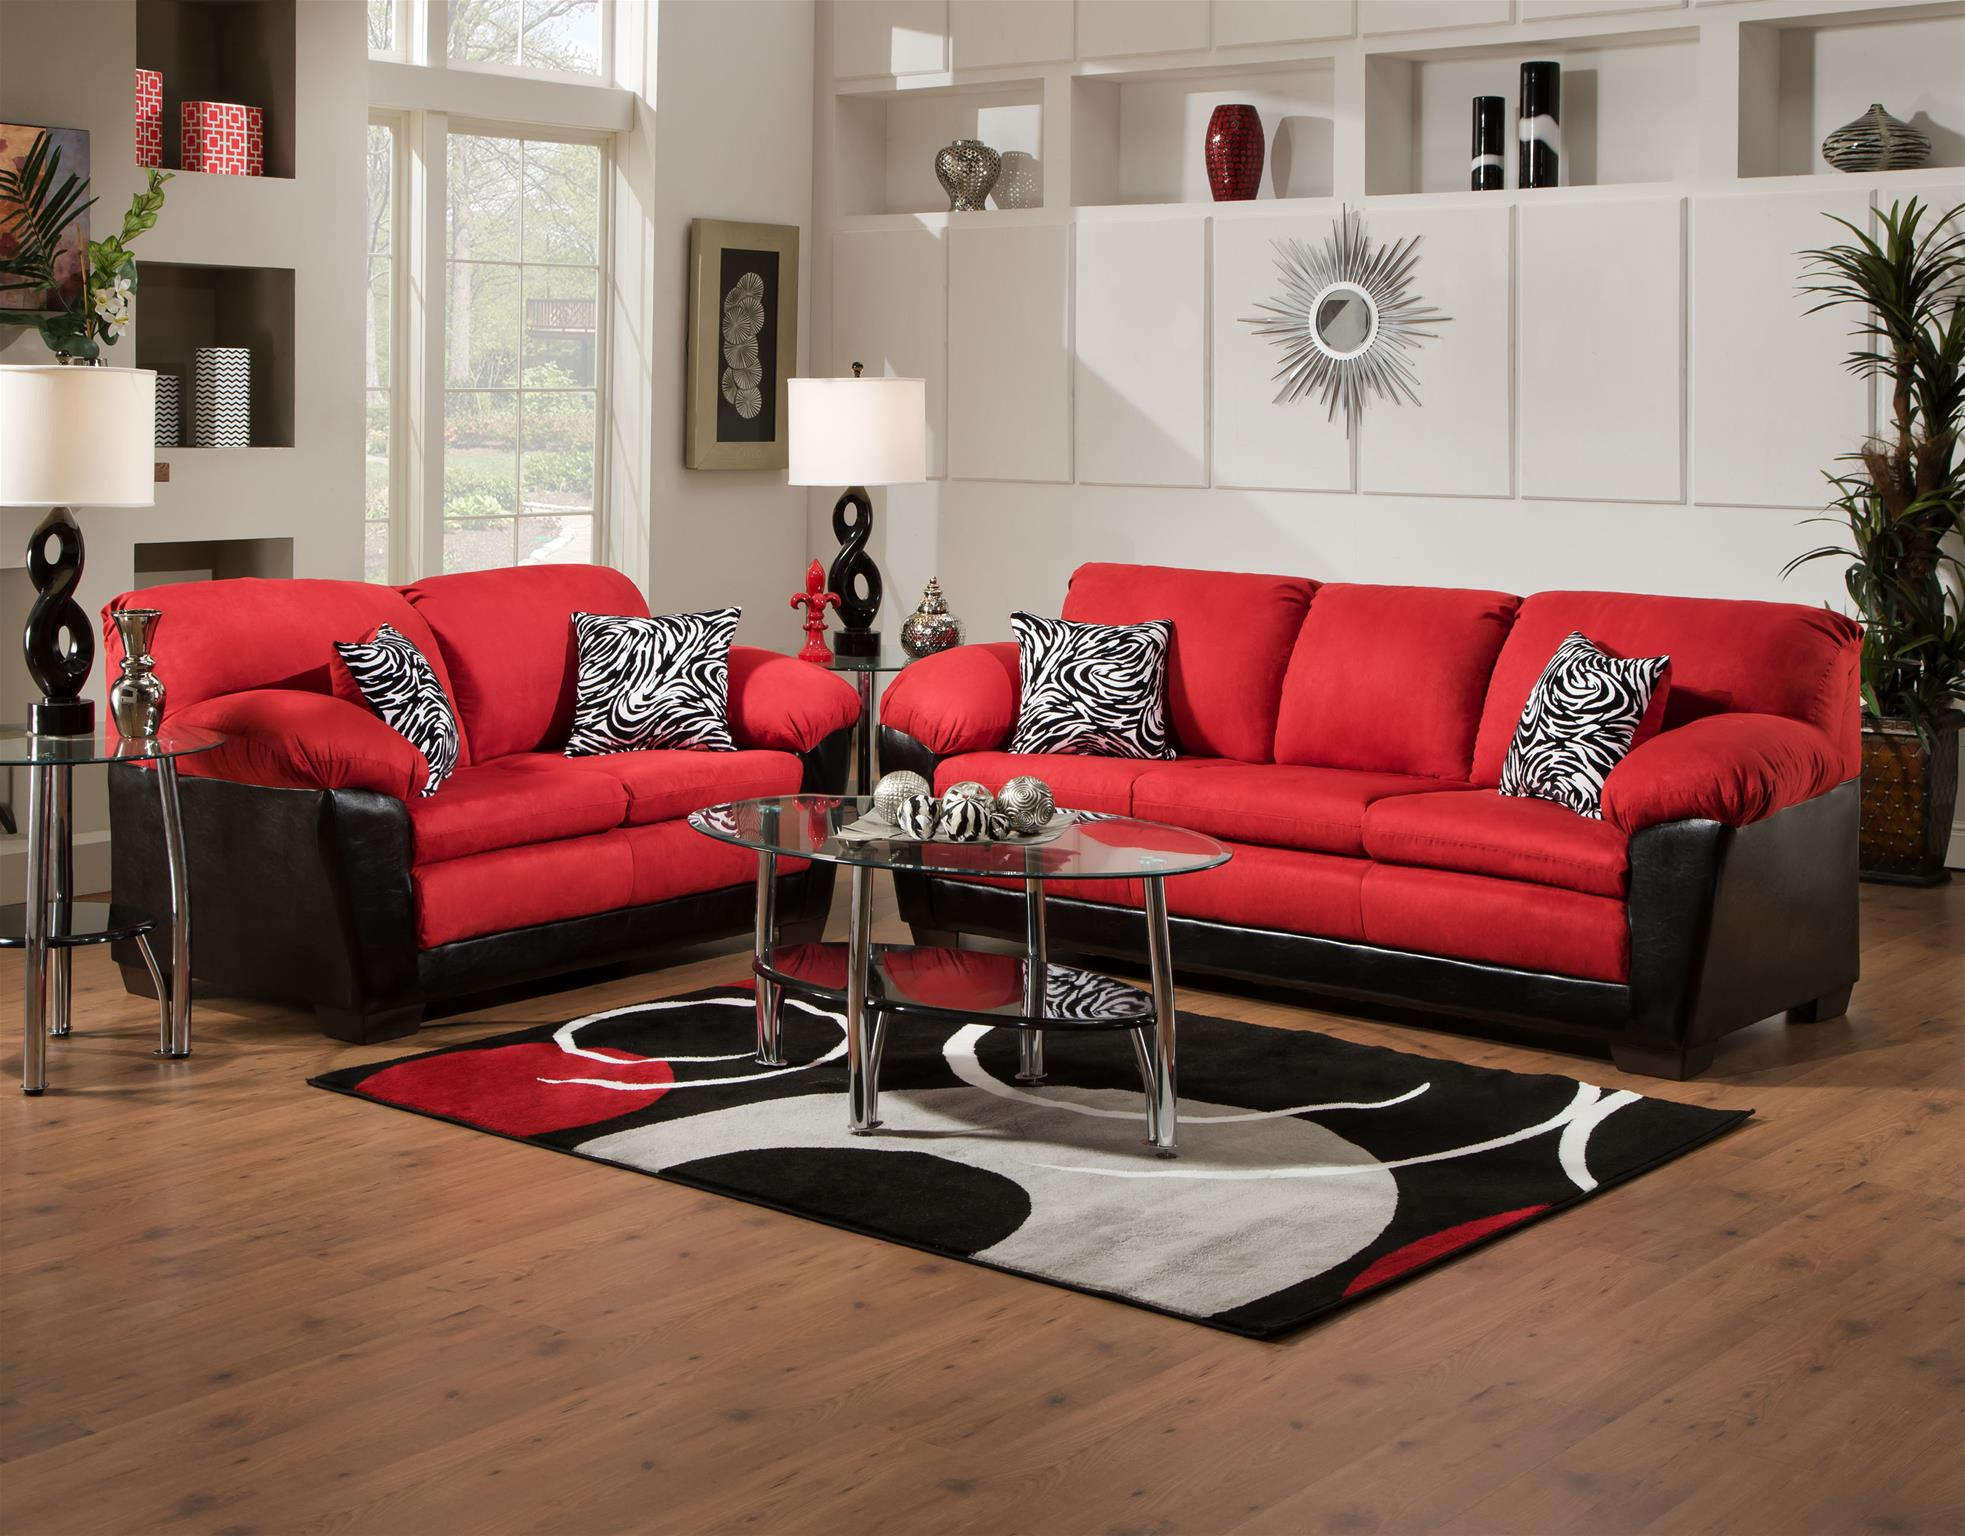 Living Room Furniture Sets 2017 february 2017 – springfield furniture direct